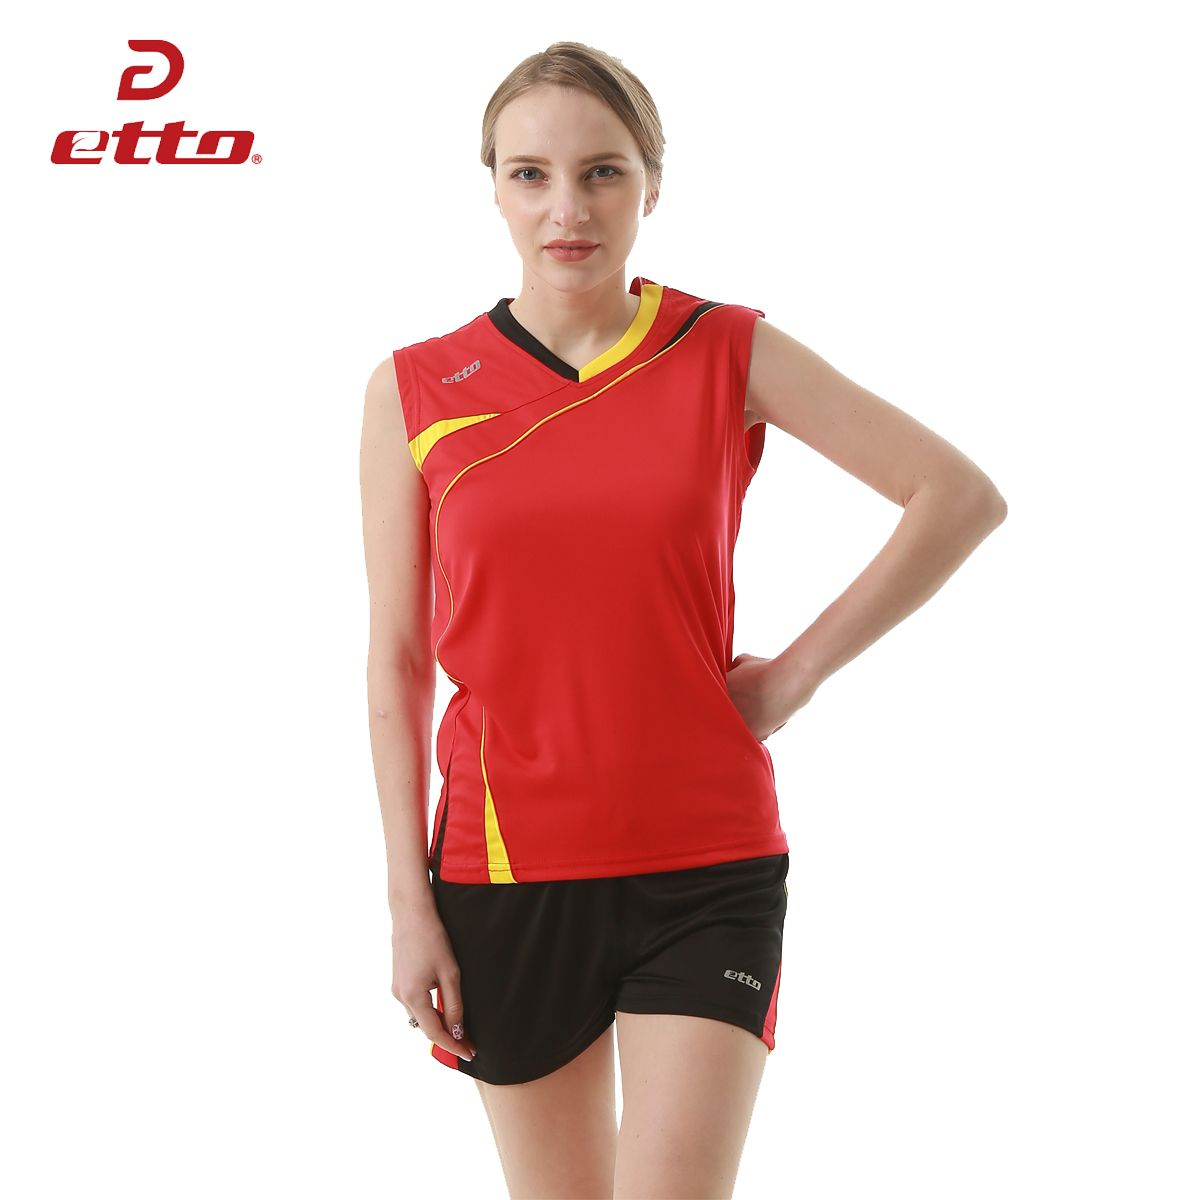 Etto Professional Volleyball Jersey Sets For Women Quick Dry Breathable Volleyball Team Training Unifo Professional Volleyball Team Training Athletic Tank Tops